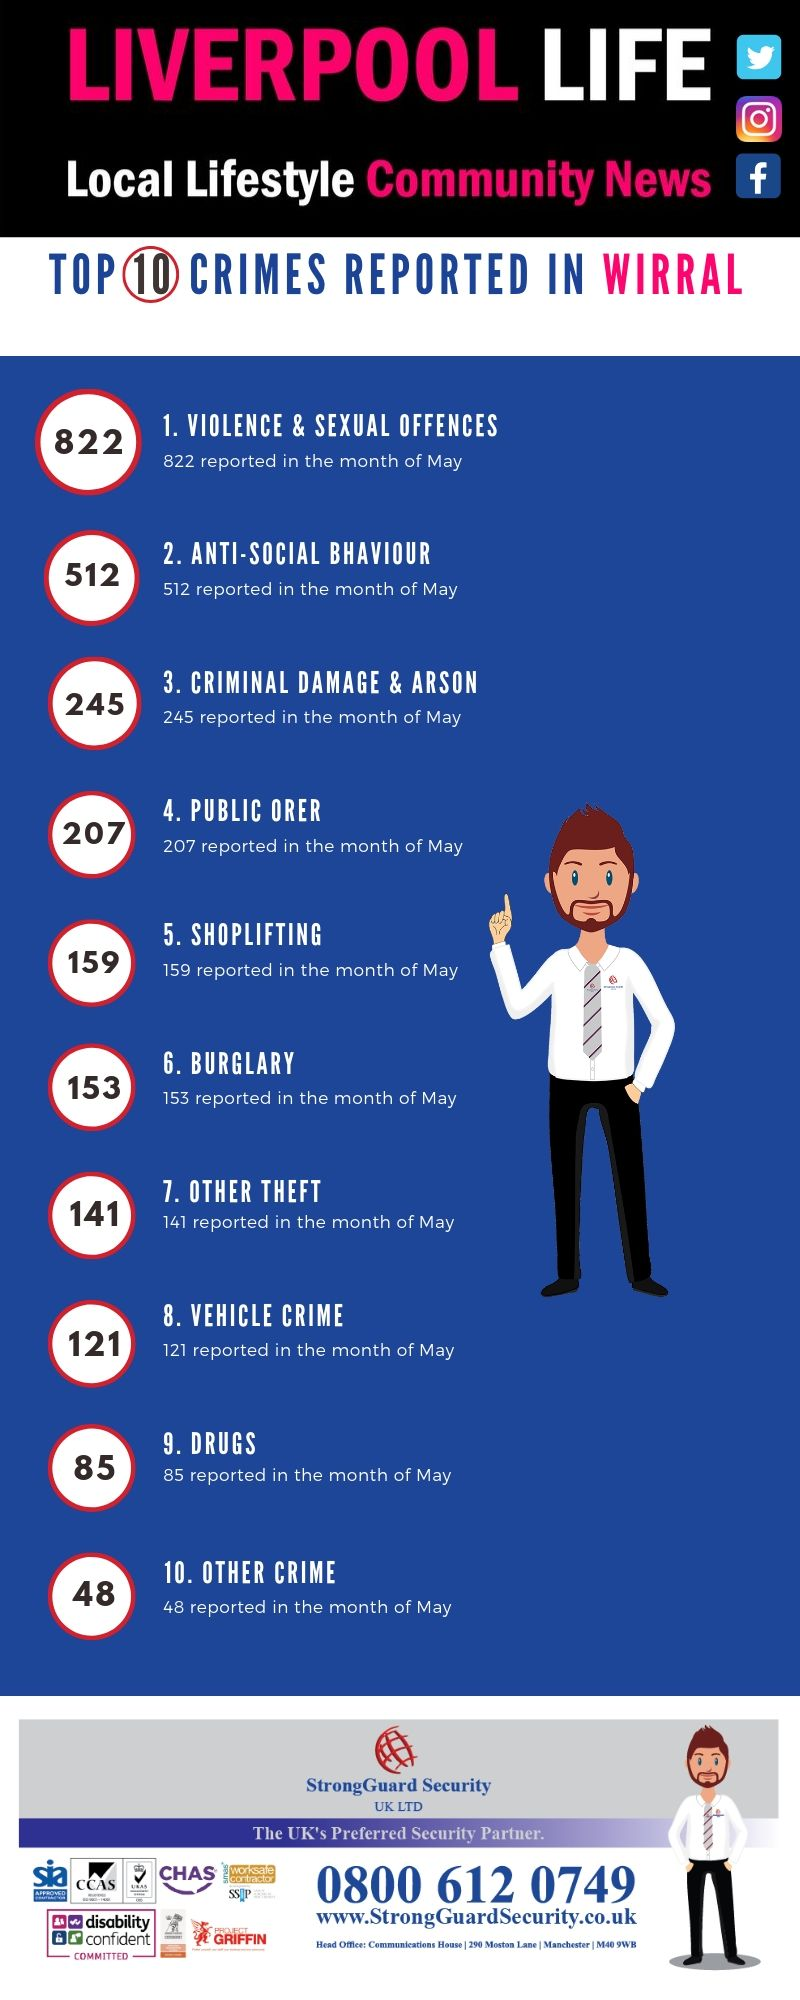 10 MOST REPORTED CRIMES IN THE WIRRAL - MAY 2019